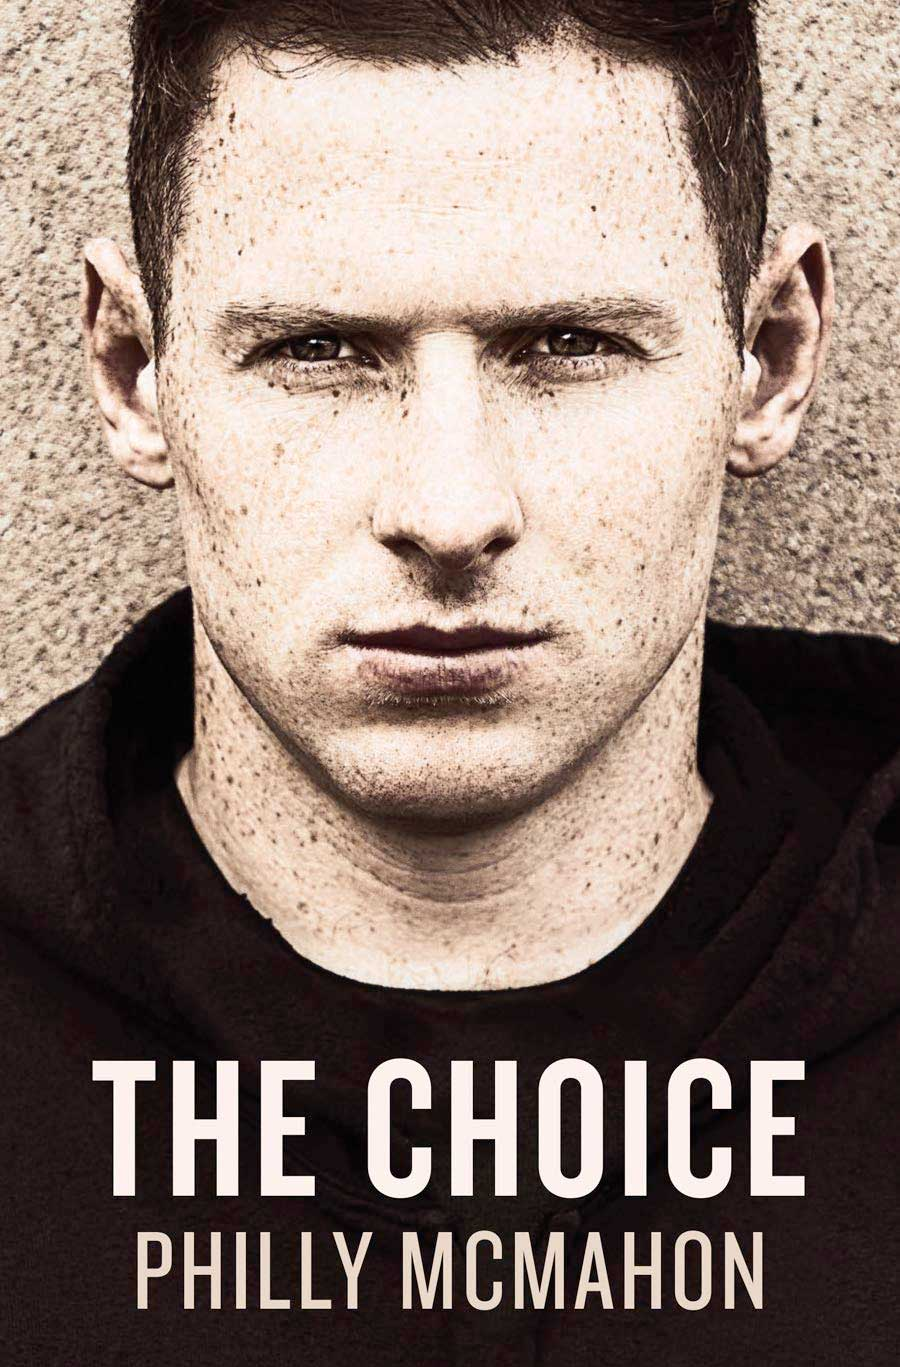 Philly McMahon - The Choice